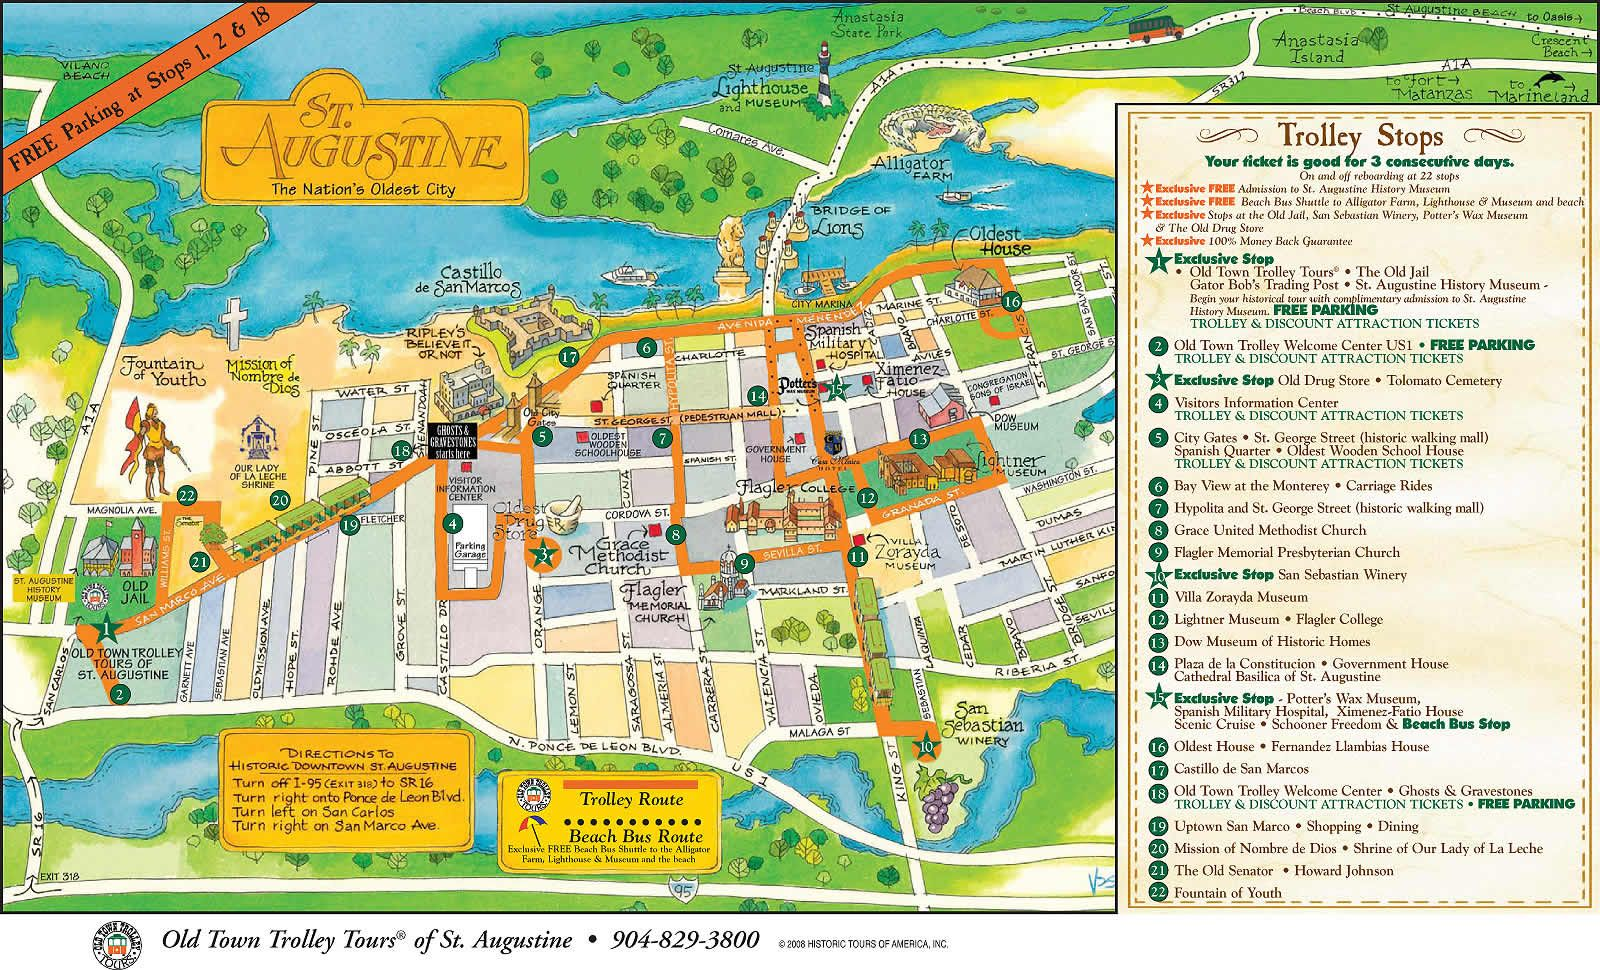 st augustine fl click to view the full size image courtesy of